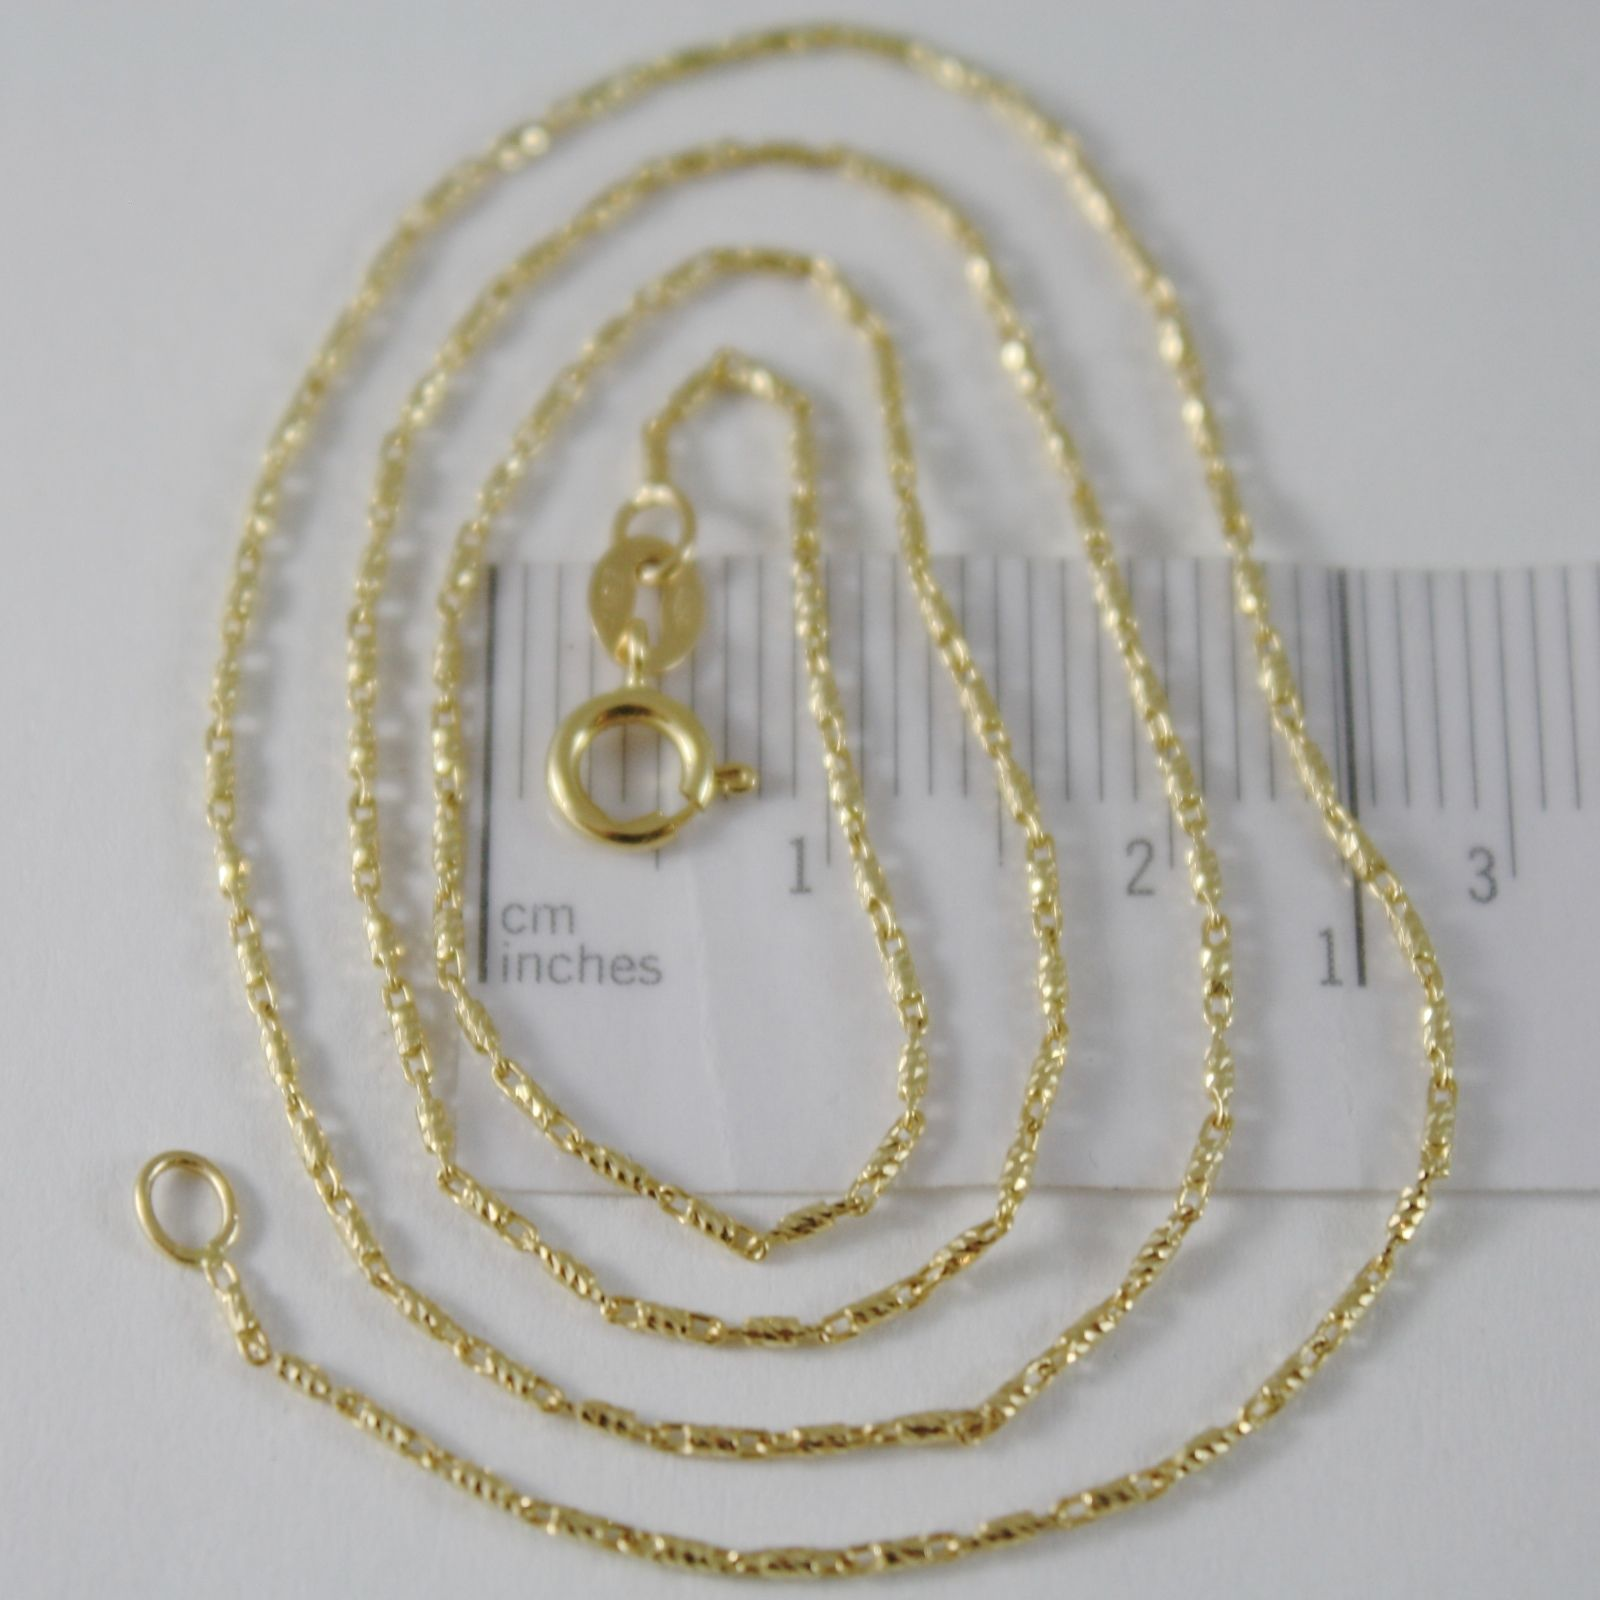 SOLID 18K YELLOW GOLD FINELY WORKED TUBE CHAIN 16 INCHES, 1 MM, MADE IN ITALY